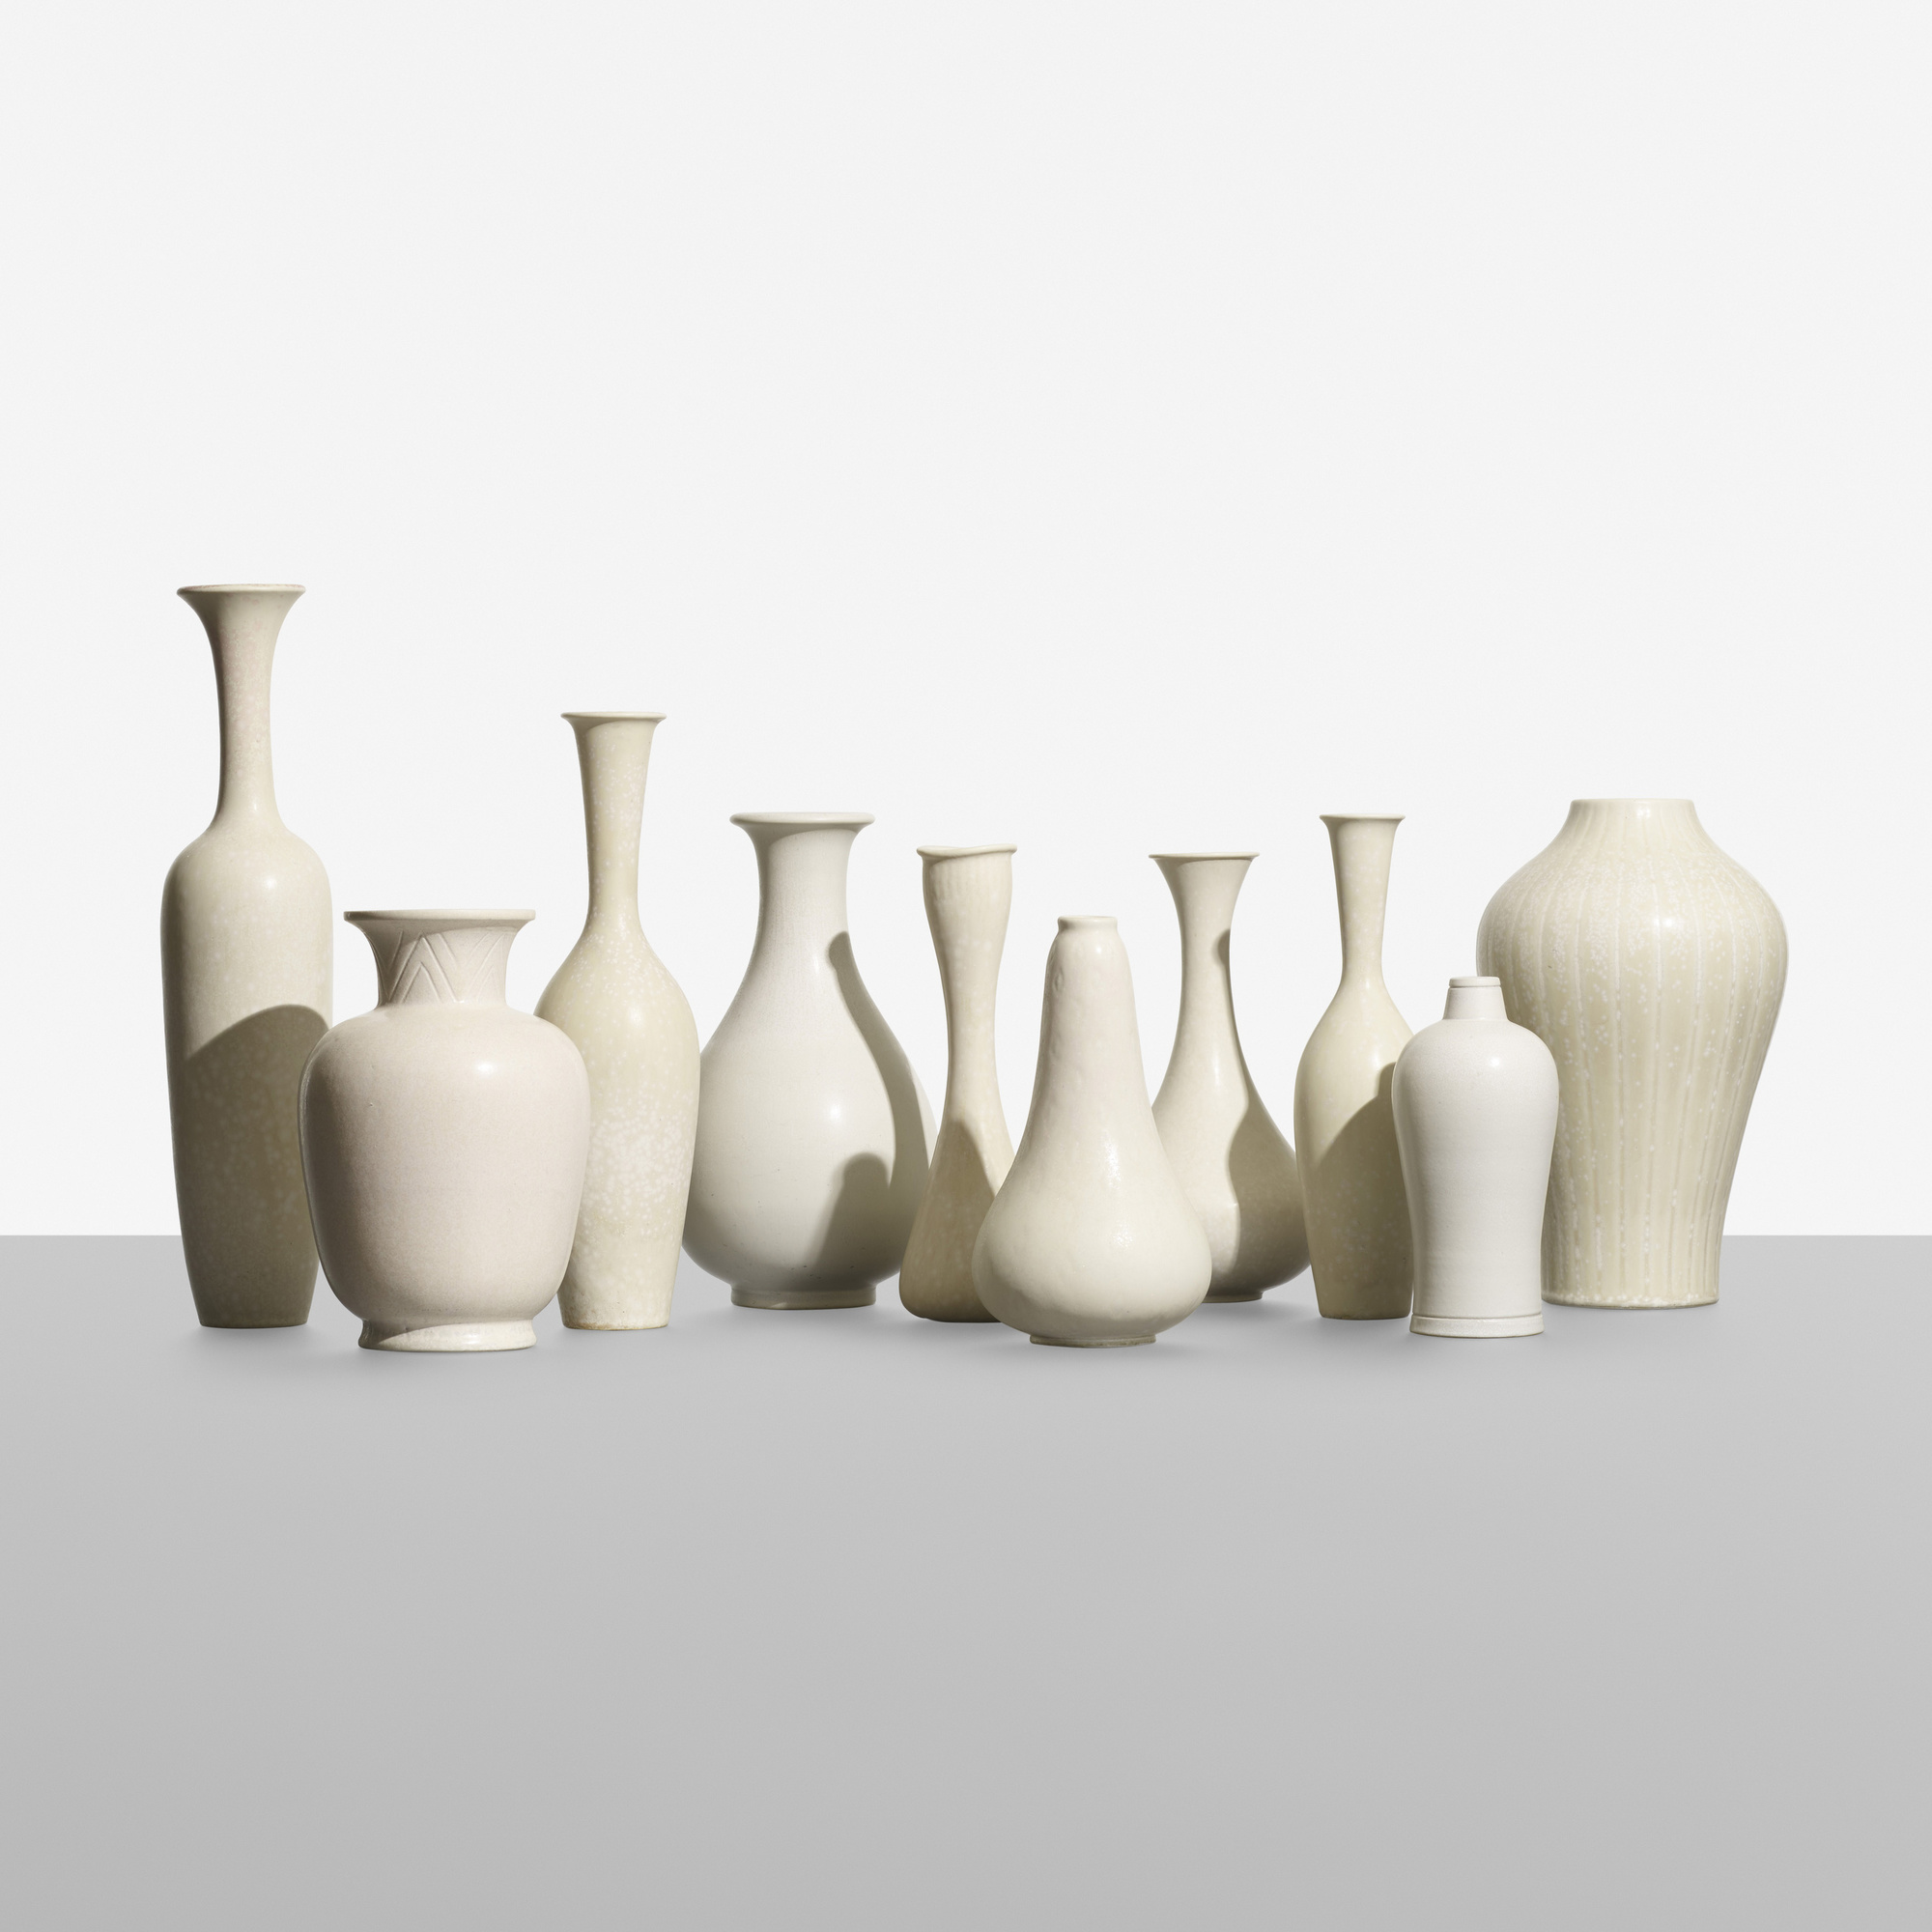 167: Gunnar Nylund / collection of ten vessels (1 of 4)